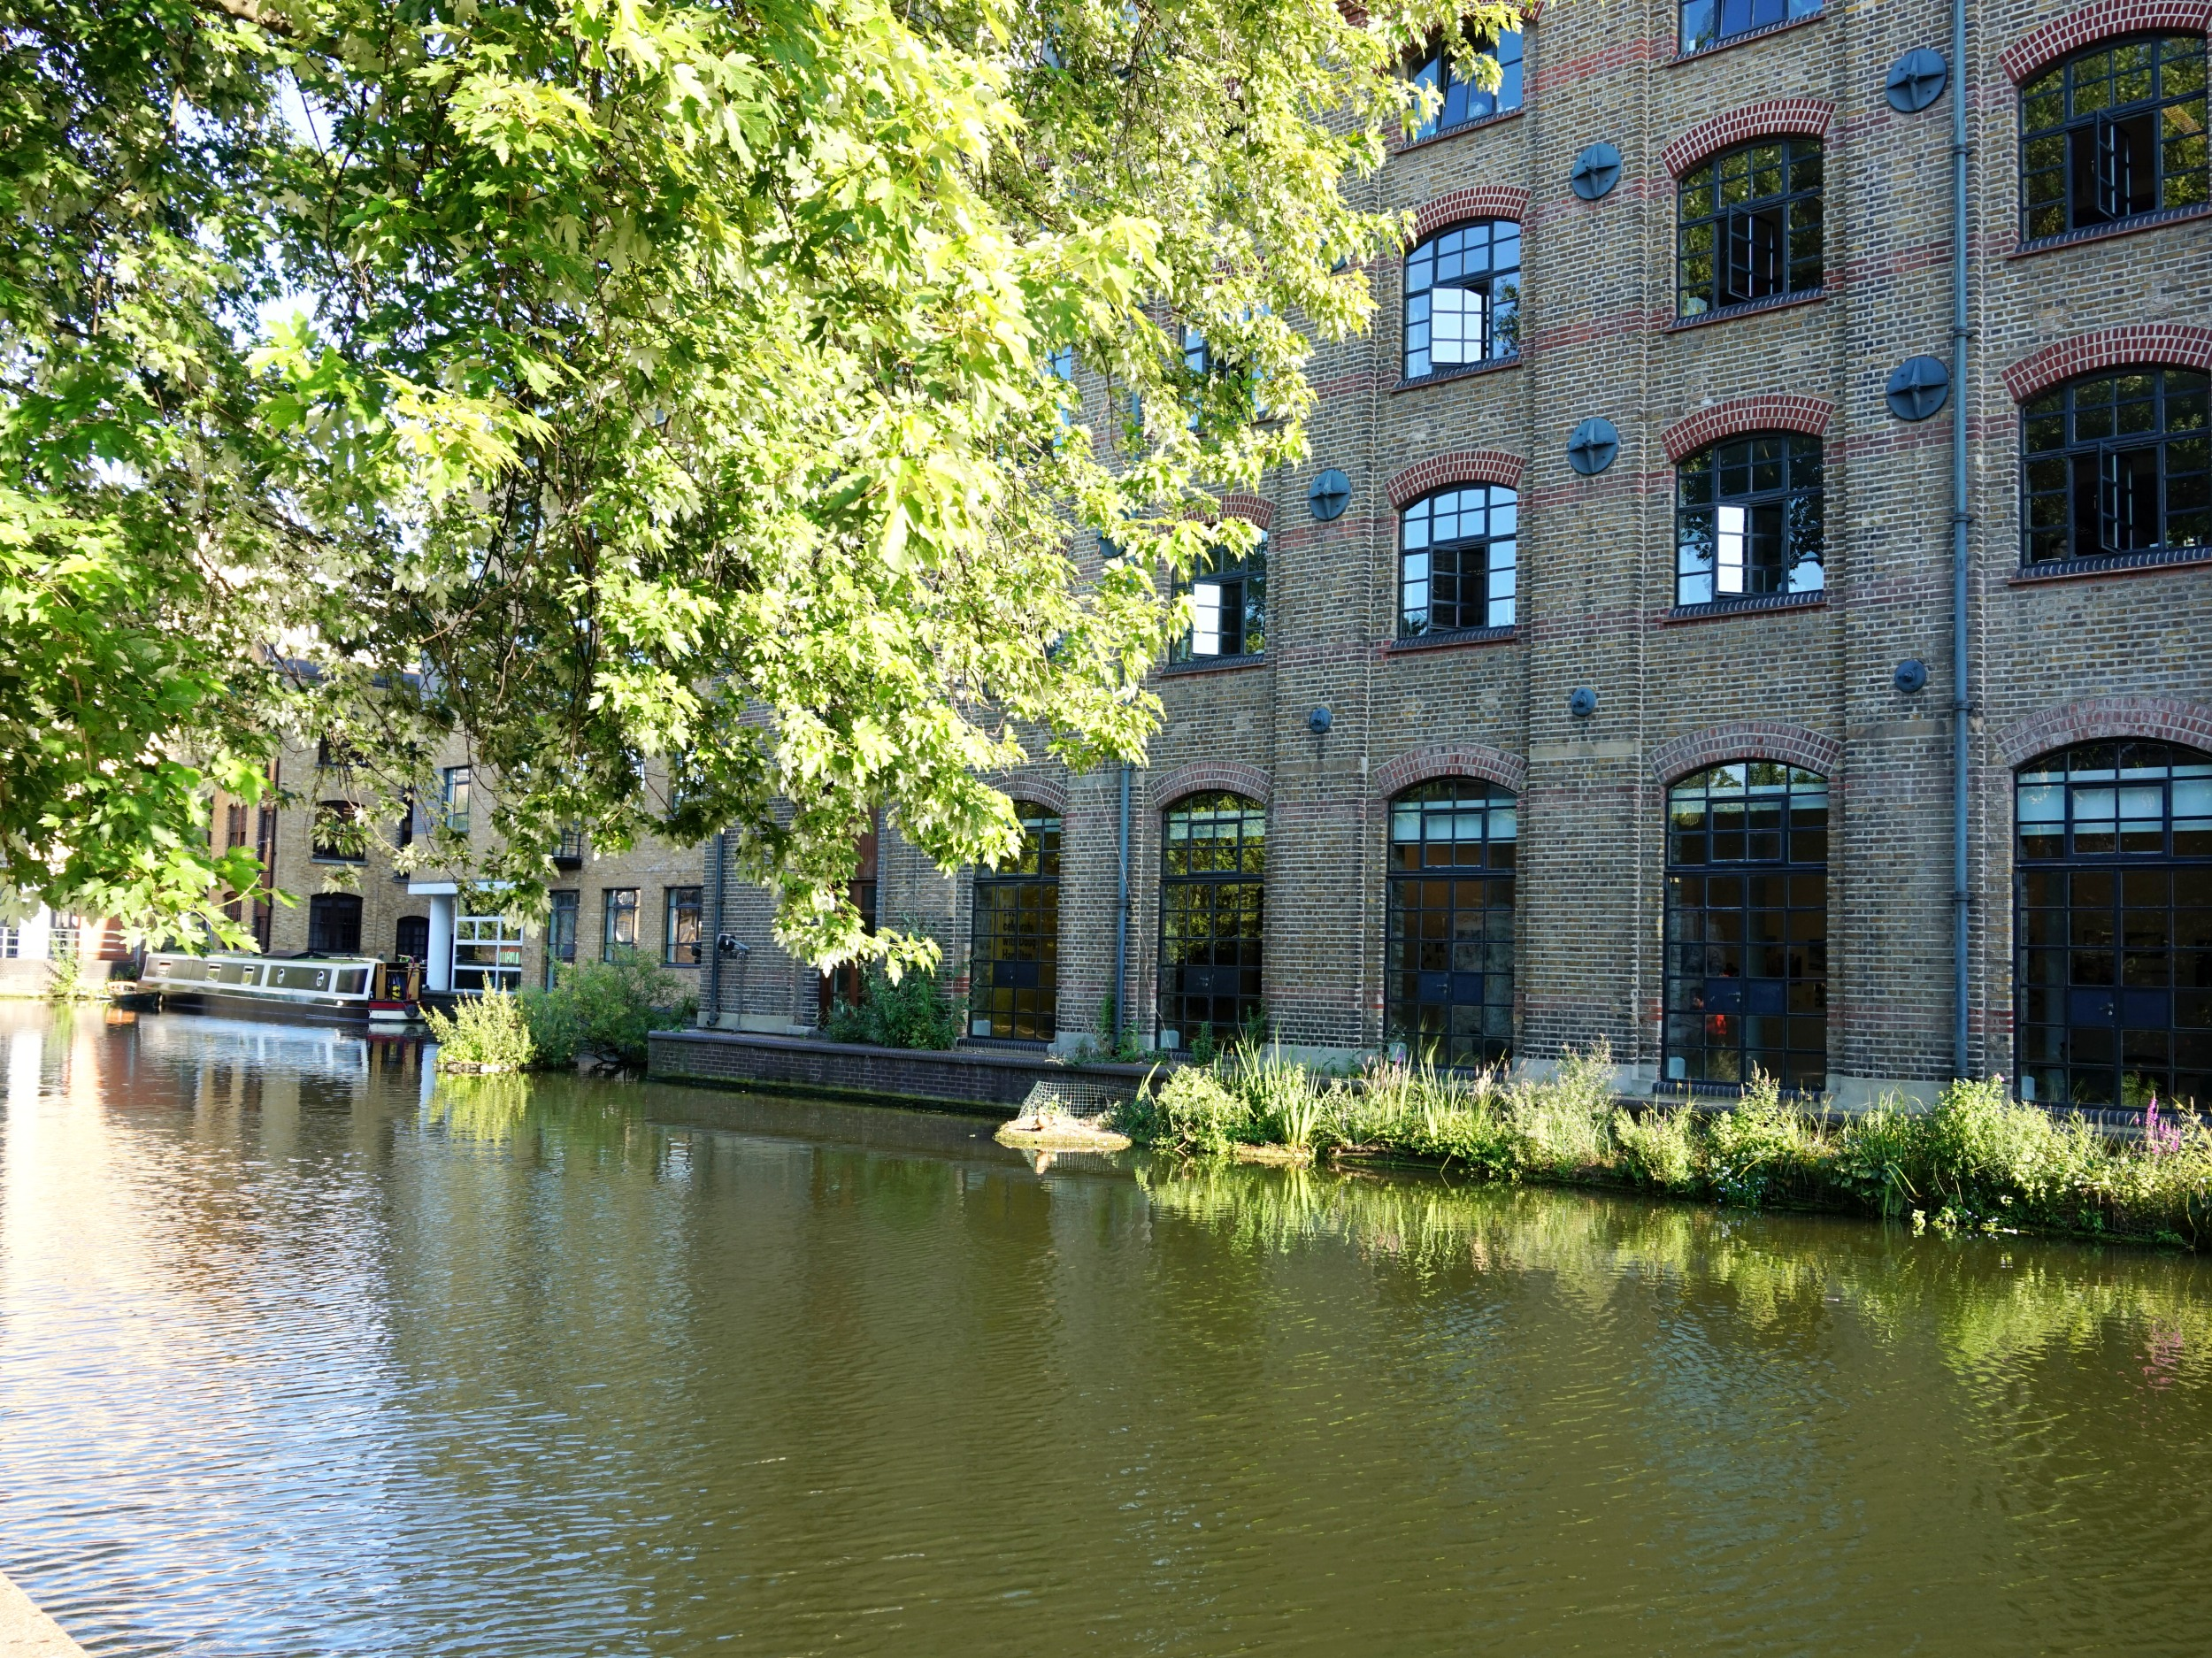 Regents-Canal-73